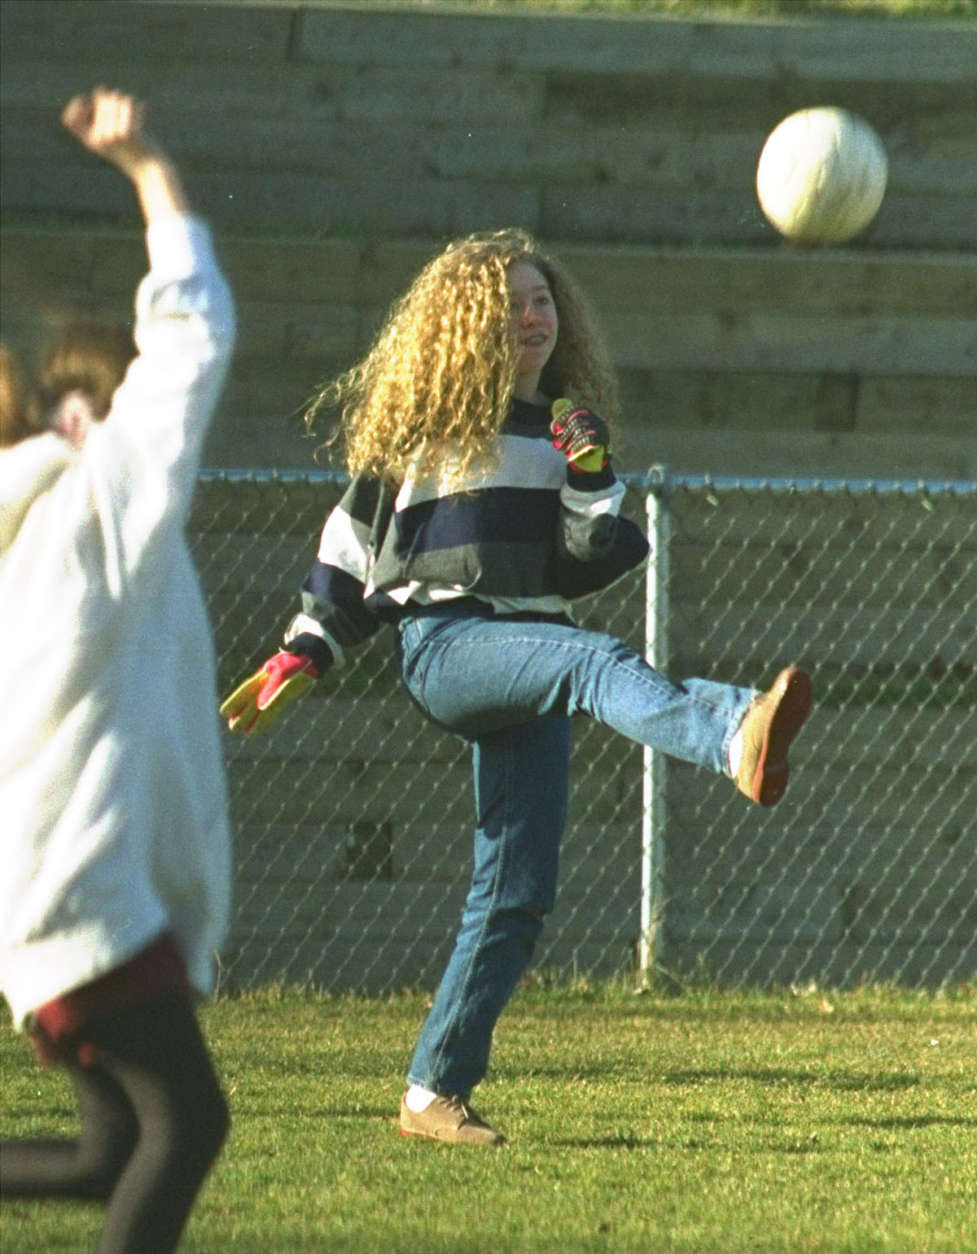 Chelsea Clinton, the president's 12-year-old daughter, clears the ball after making a save in goal during a soccer game at her school Monday. Chelsea attended her first day at Sidwell Friends School in northwest Washington.  (AP Photo/Charles Tasnadi)